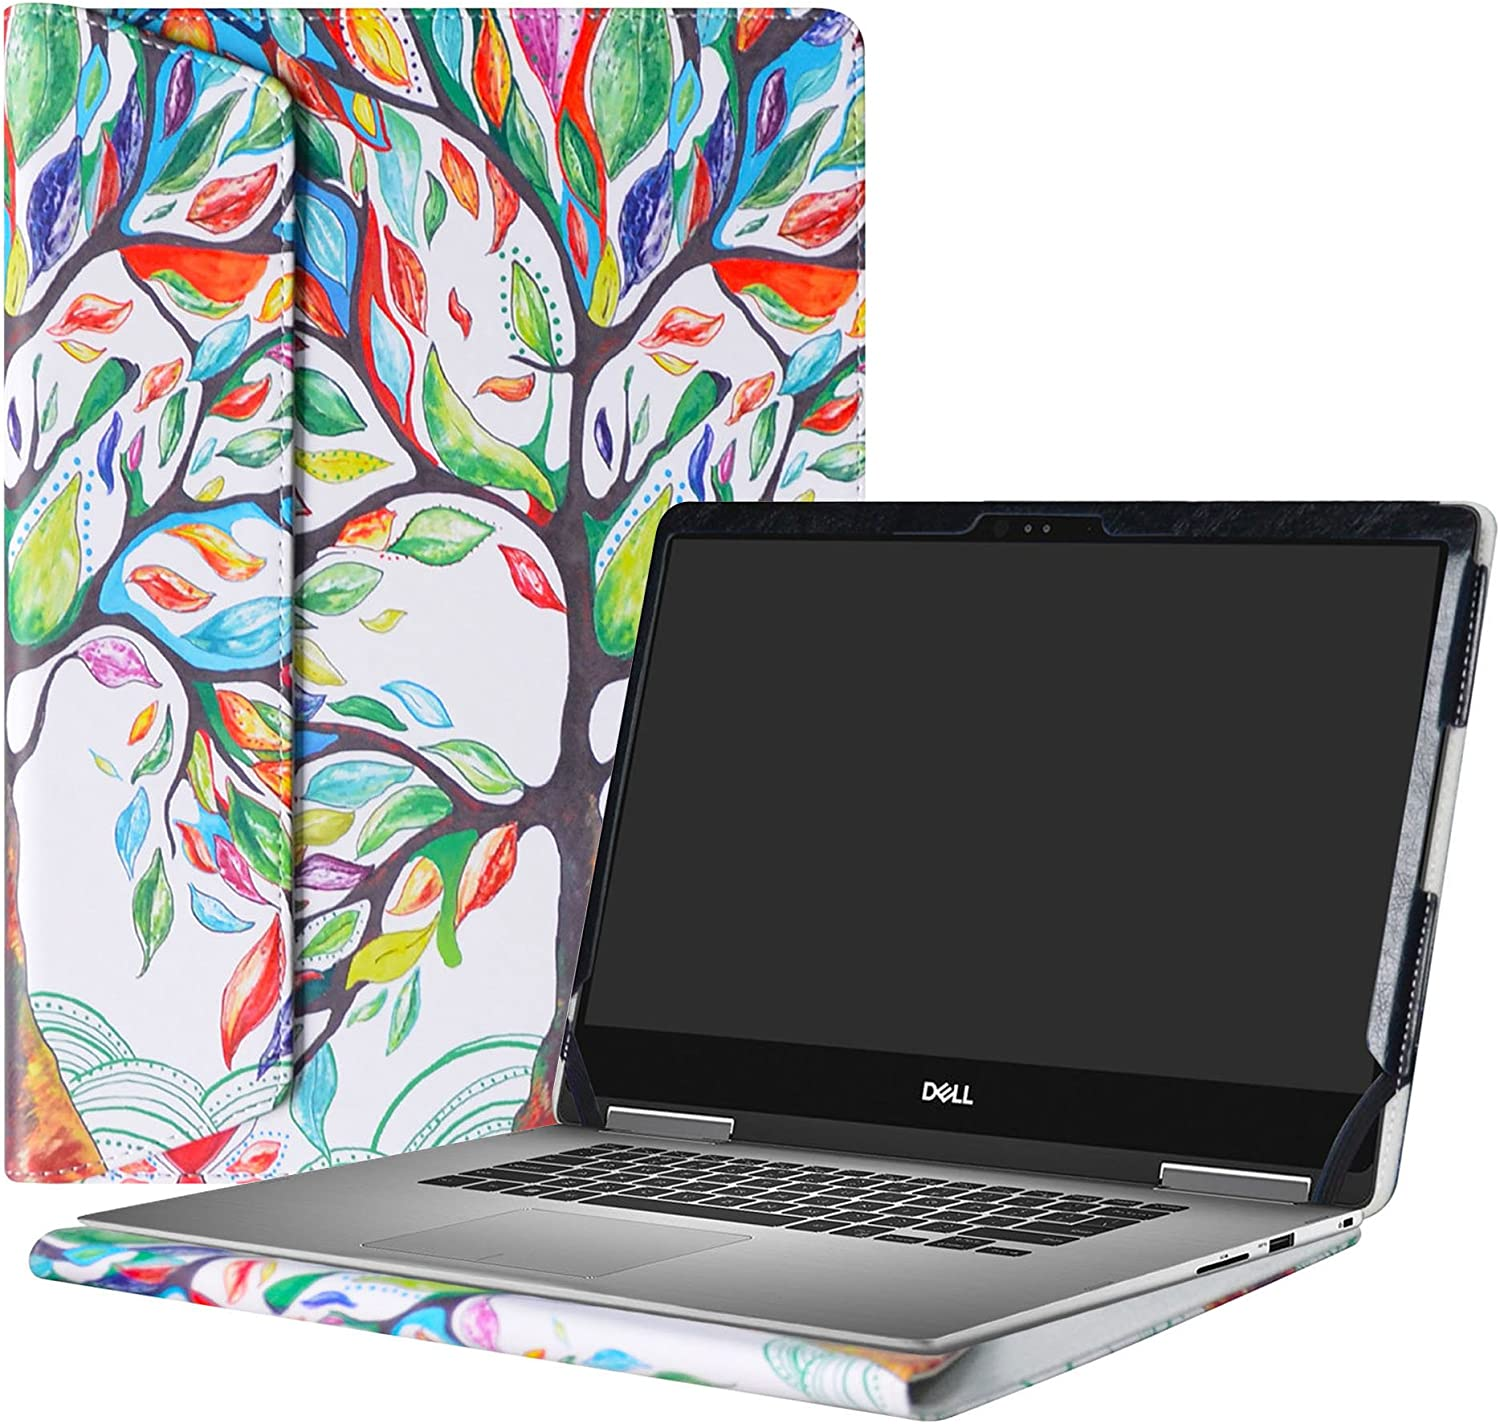 """Alapmk Protective Case Cover for 13.3"""" Dell Inspiron 13 2-in-1 7373 i7373 / Inspiron 13 7370 i7370 Laptop(Warning:only fit Model 7373 7370),Love Tree"""